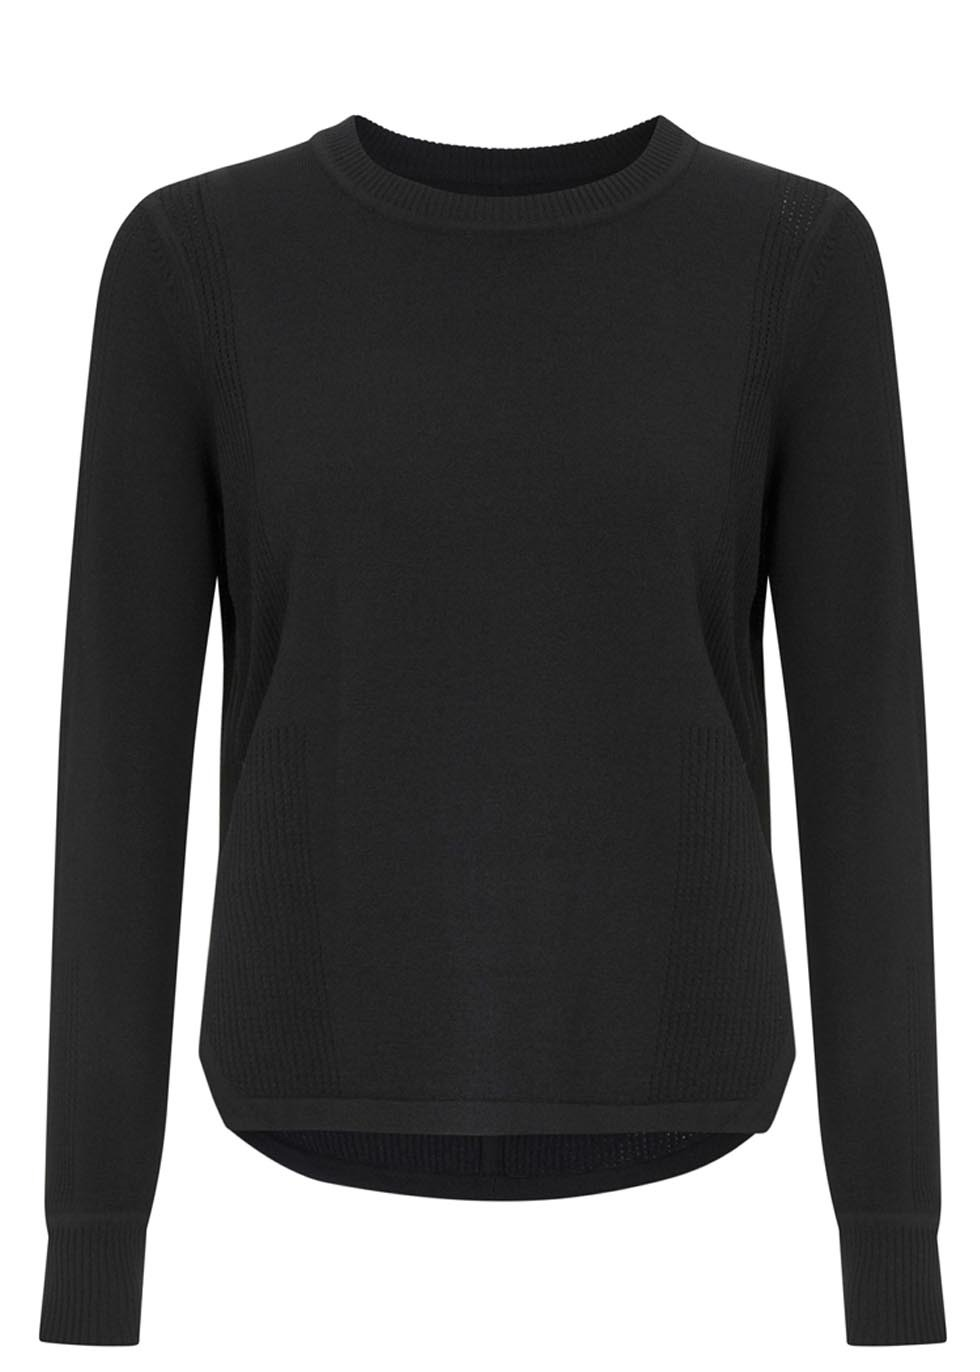 Ellen Black Perforated Stretch Jersey Top - pattern: plain; style: t-shirt; predominant colour: black; occasions: casual, creative work; length: standard; fibres: viscose/rayon - stretch; fit: straight cut; neckline: crew; back detail: longer hem at back than at front; sleeve length: long sleeve; sleeve style: standard; pattern type: fabric; texture group: jersey - stretchy/drapey; season: s/s 2014